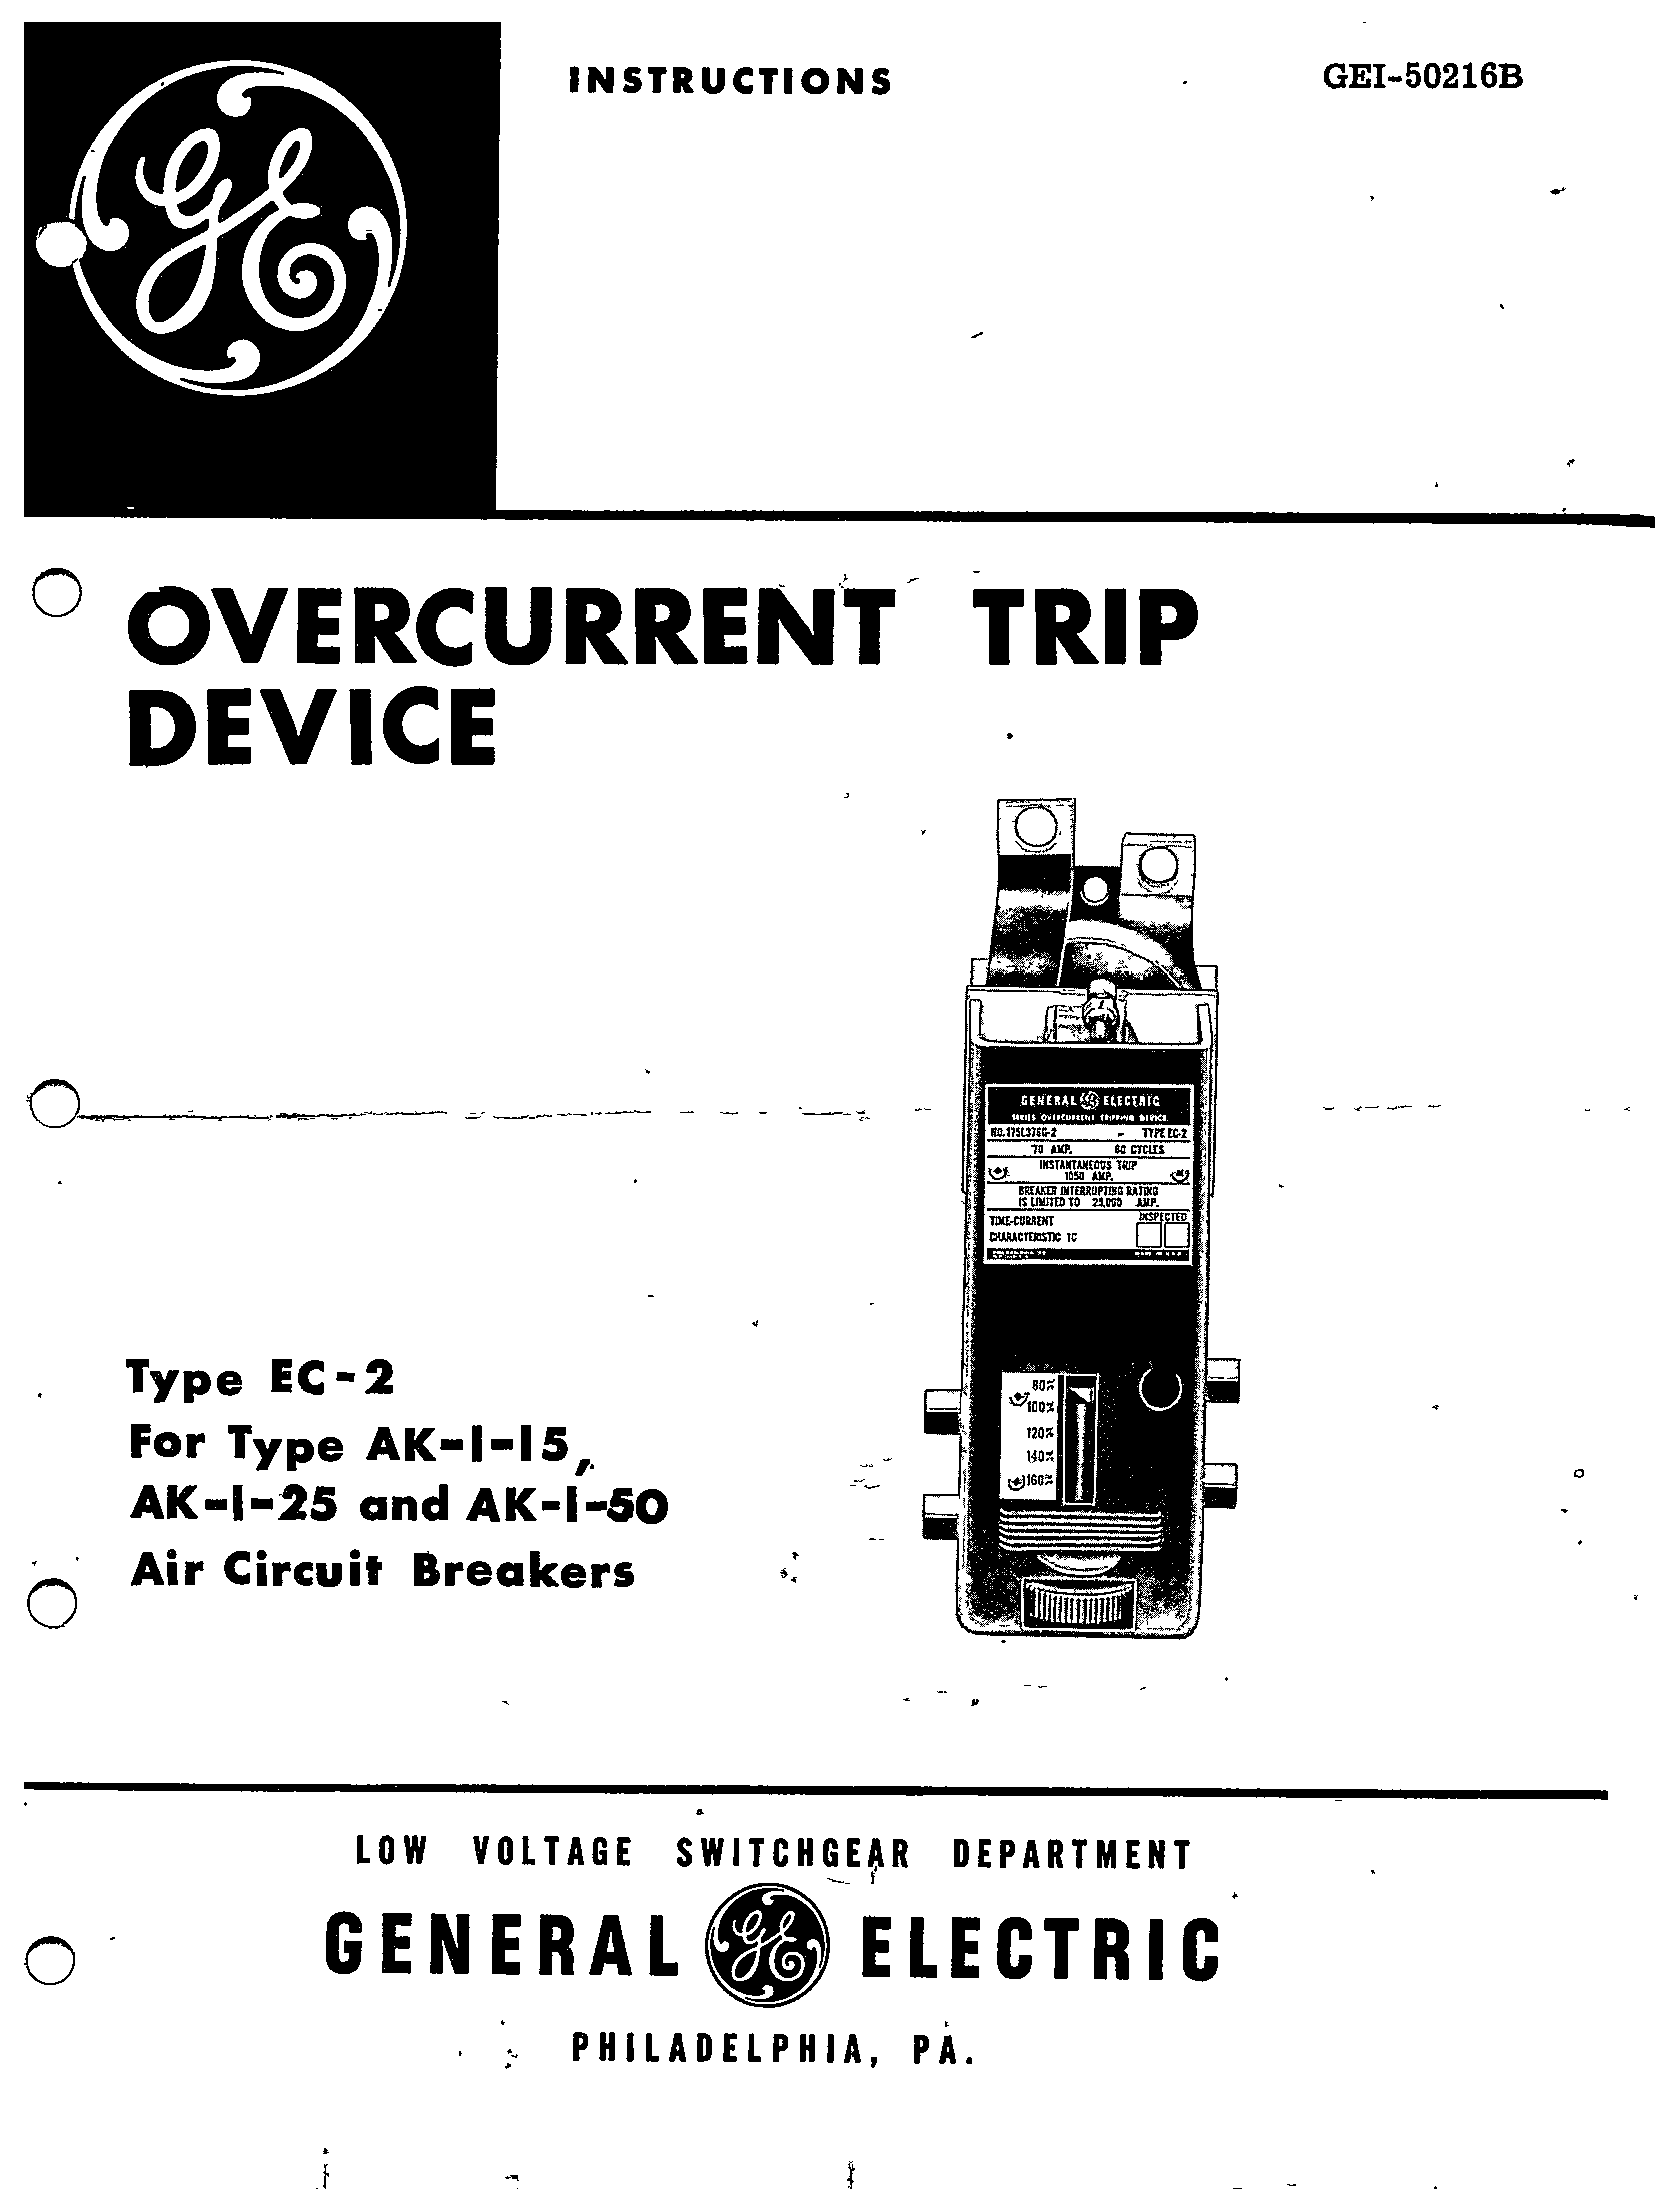 Gei Overcurrent Trip Device Type Ec 2 For Type Ak 1 15 Ak 1 25 And Ak 1 50 Air Circuit